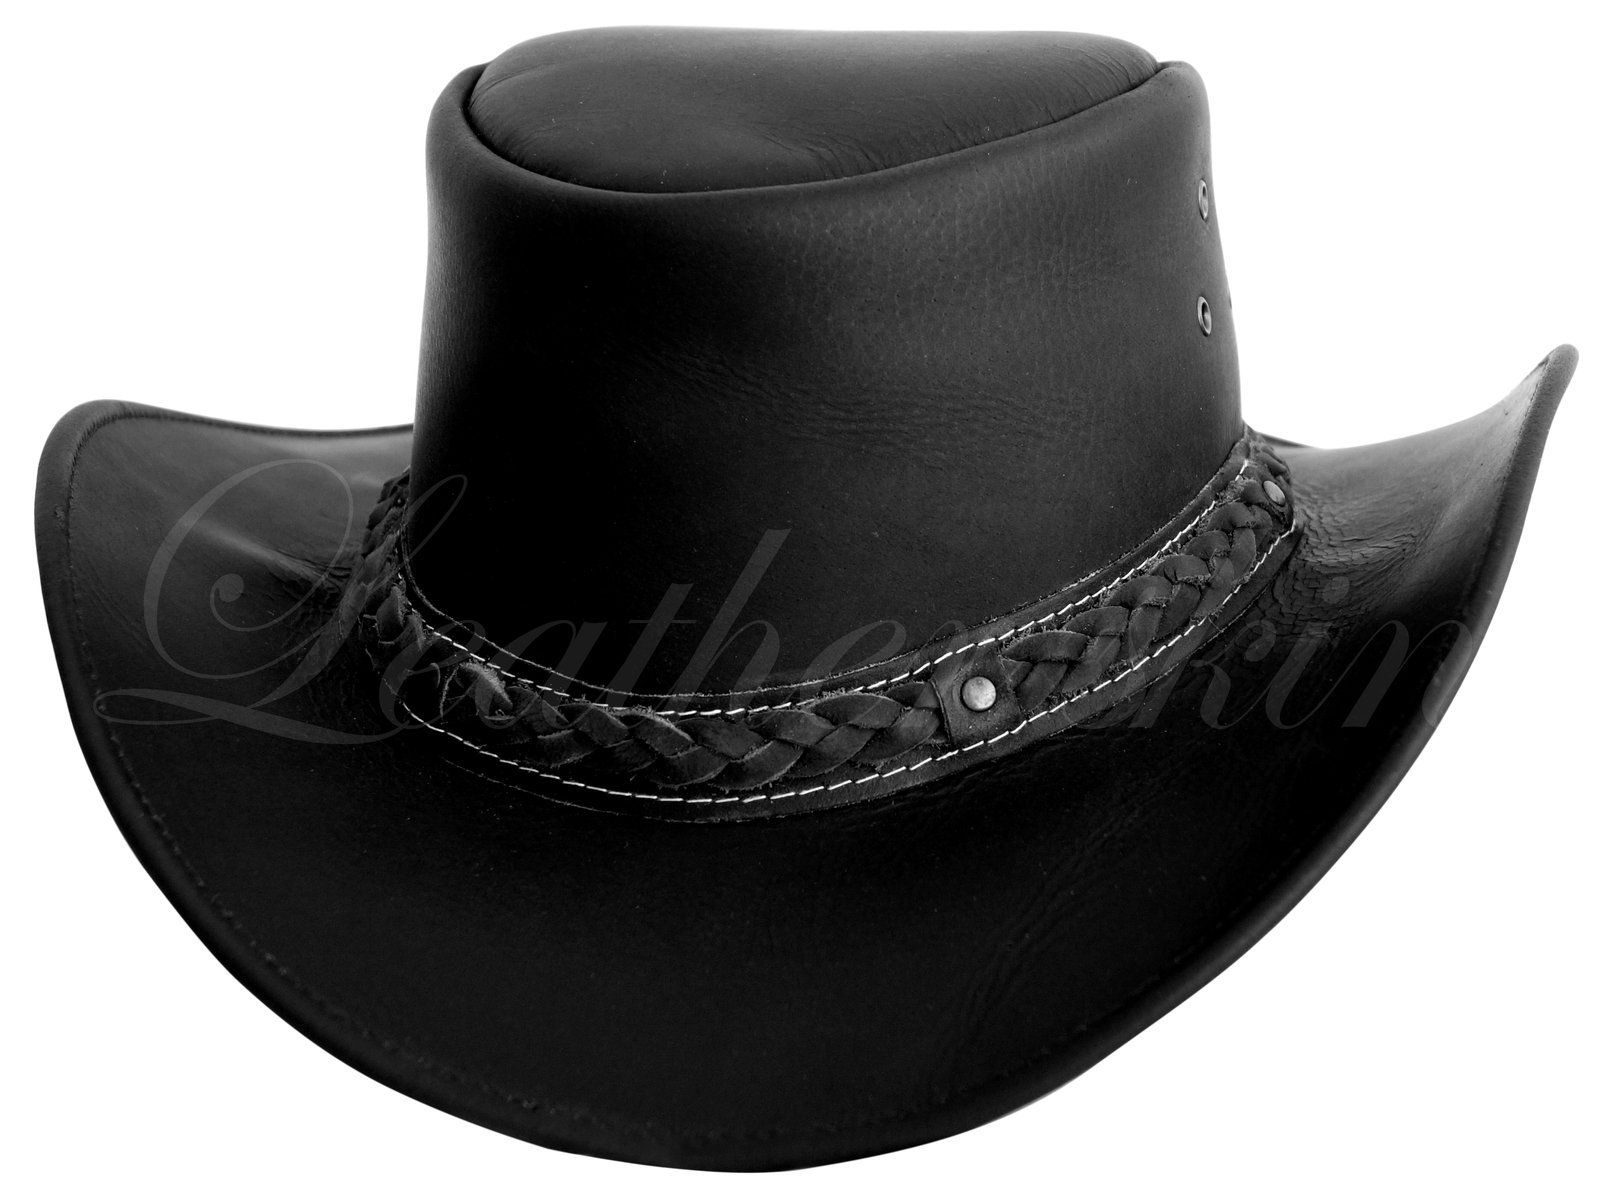 f8a60ecbf3d2c Men Handmade Black Hat Aussie Bush Cowboy Western Outback Leather ...